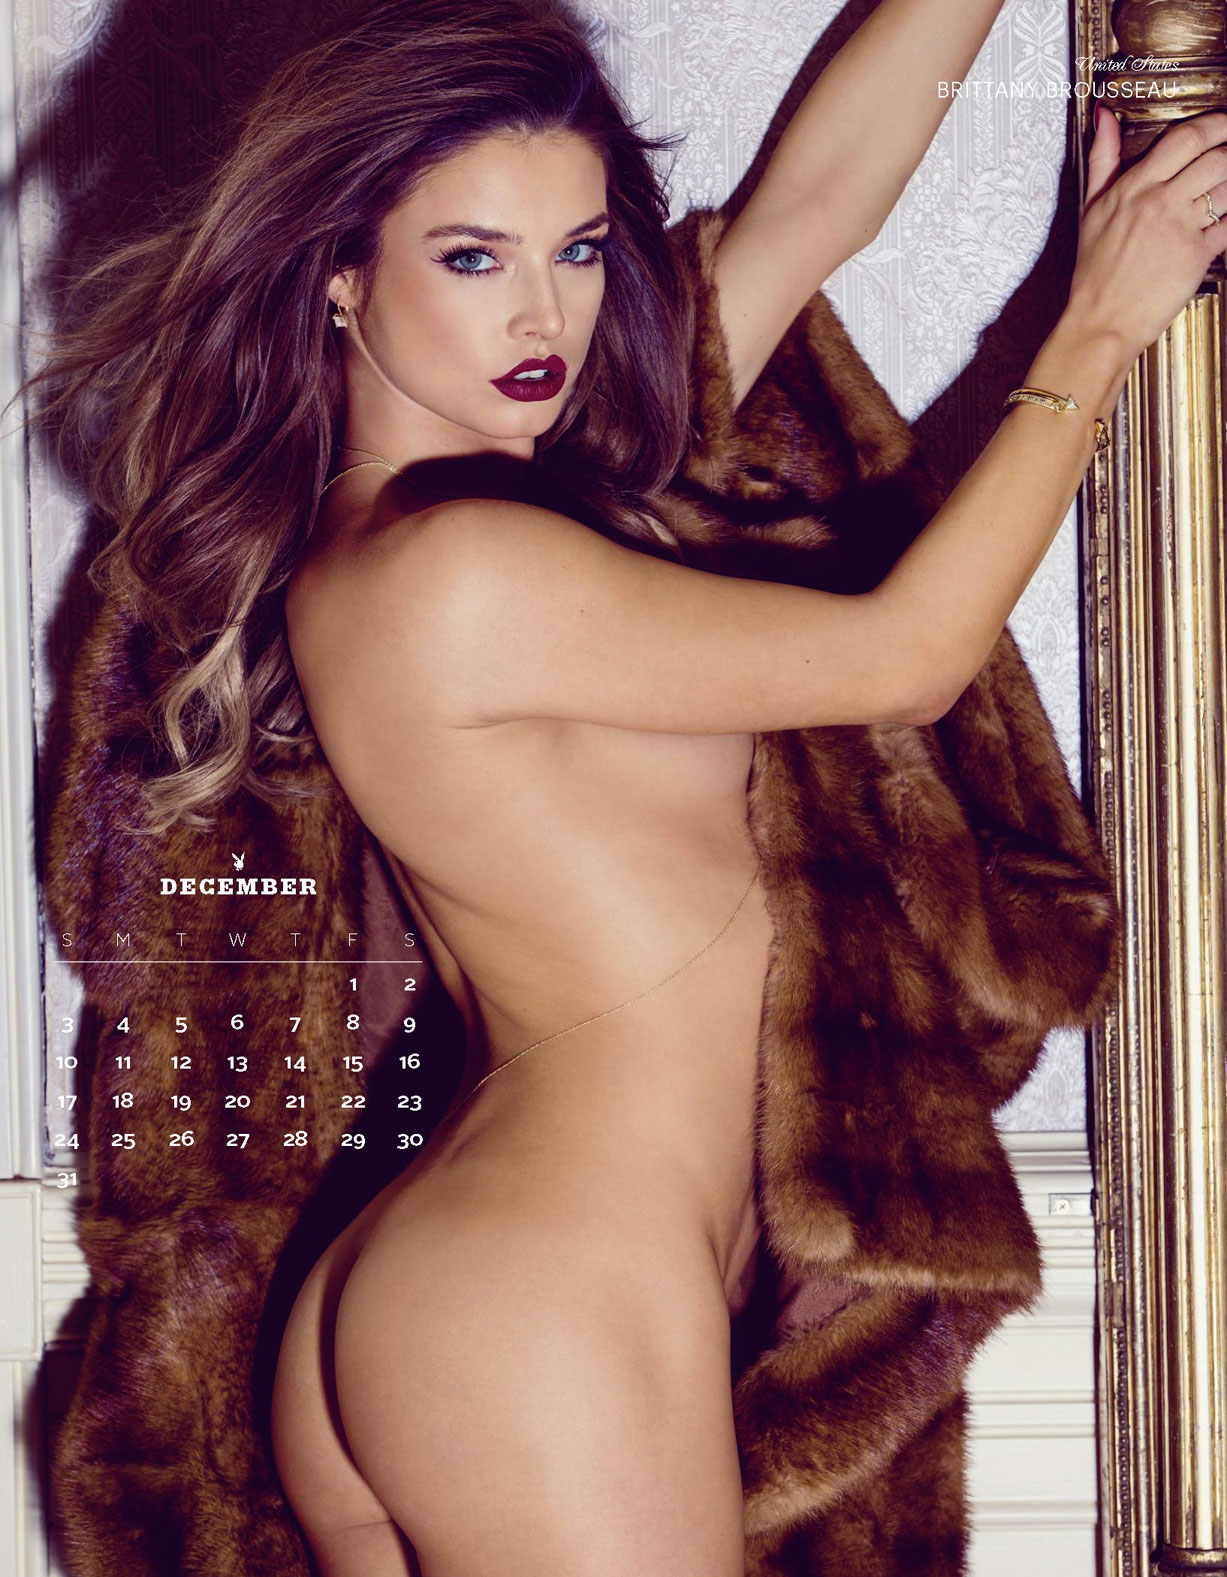 Playboy USA 2017 Official Calendar - Playmates Around the World - Brittany Brousseau | United States